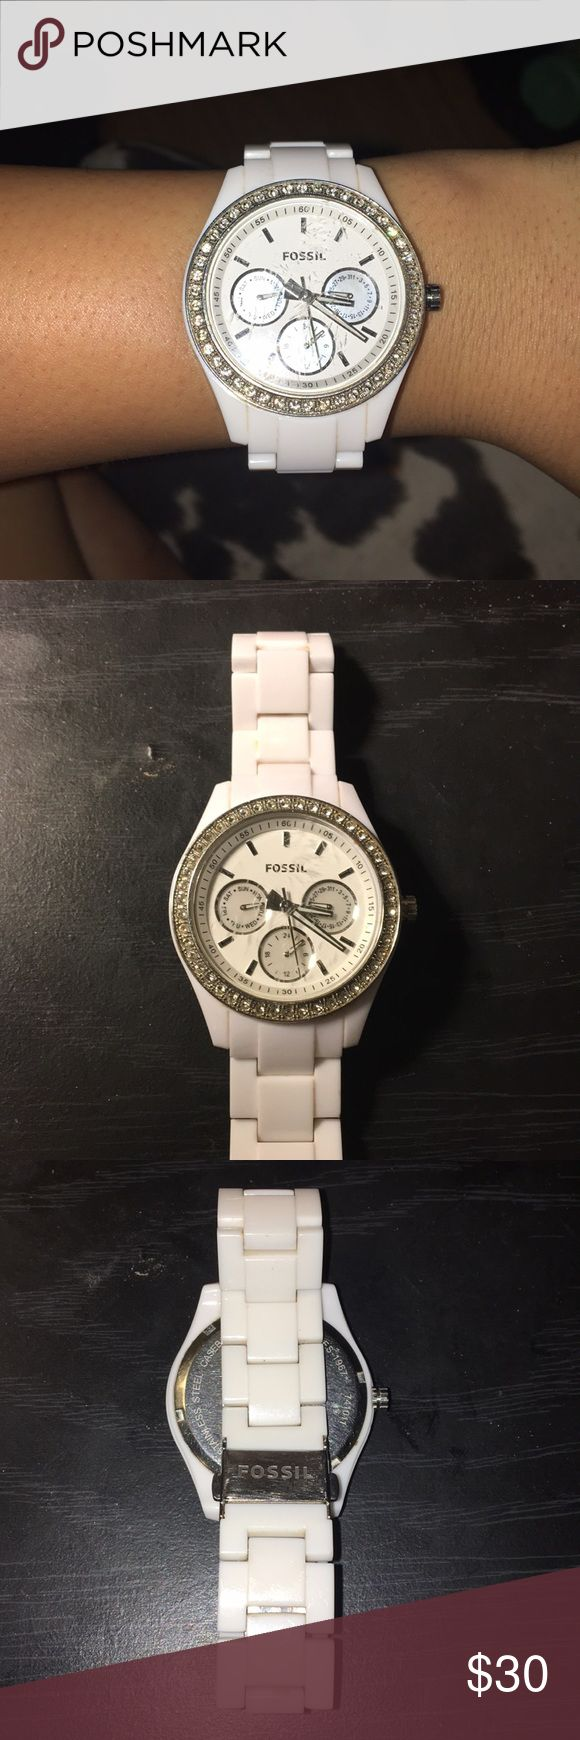 White Fossil watch Scratches to face, mildly worn. NO jewels missing. Needs battery replaced. Accepting all reasonable offers. Ships in 1-2 days. Fossil Accessories Watches